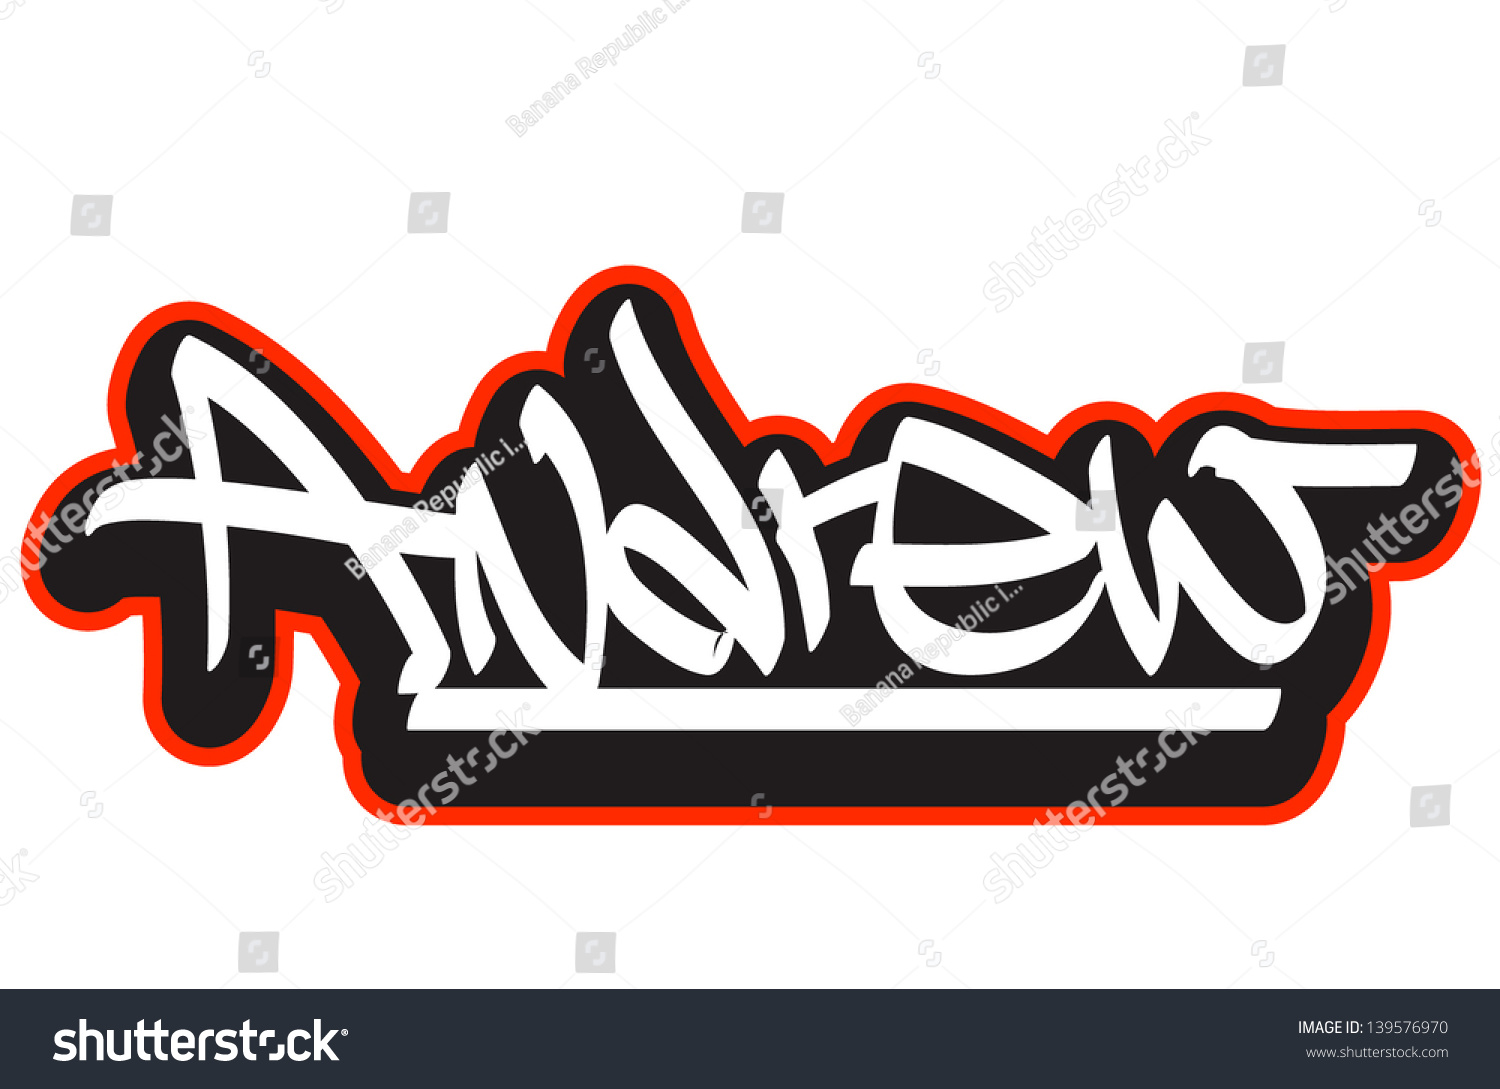 Andrew Graffiti Font Style Name Hiphop Stock Vector